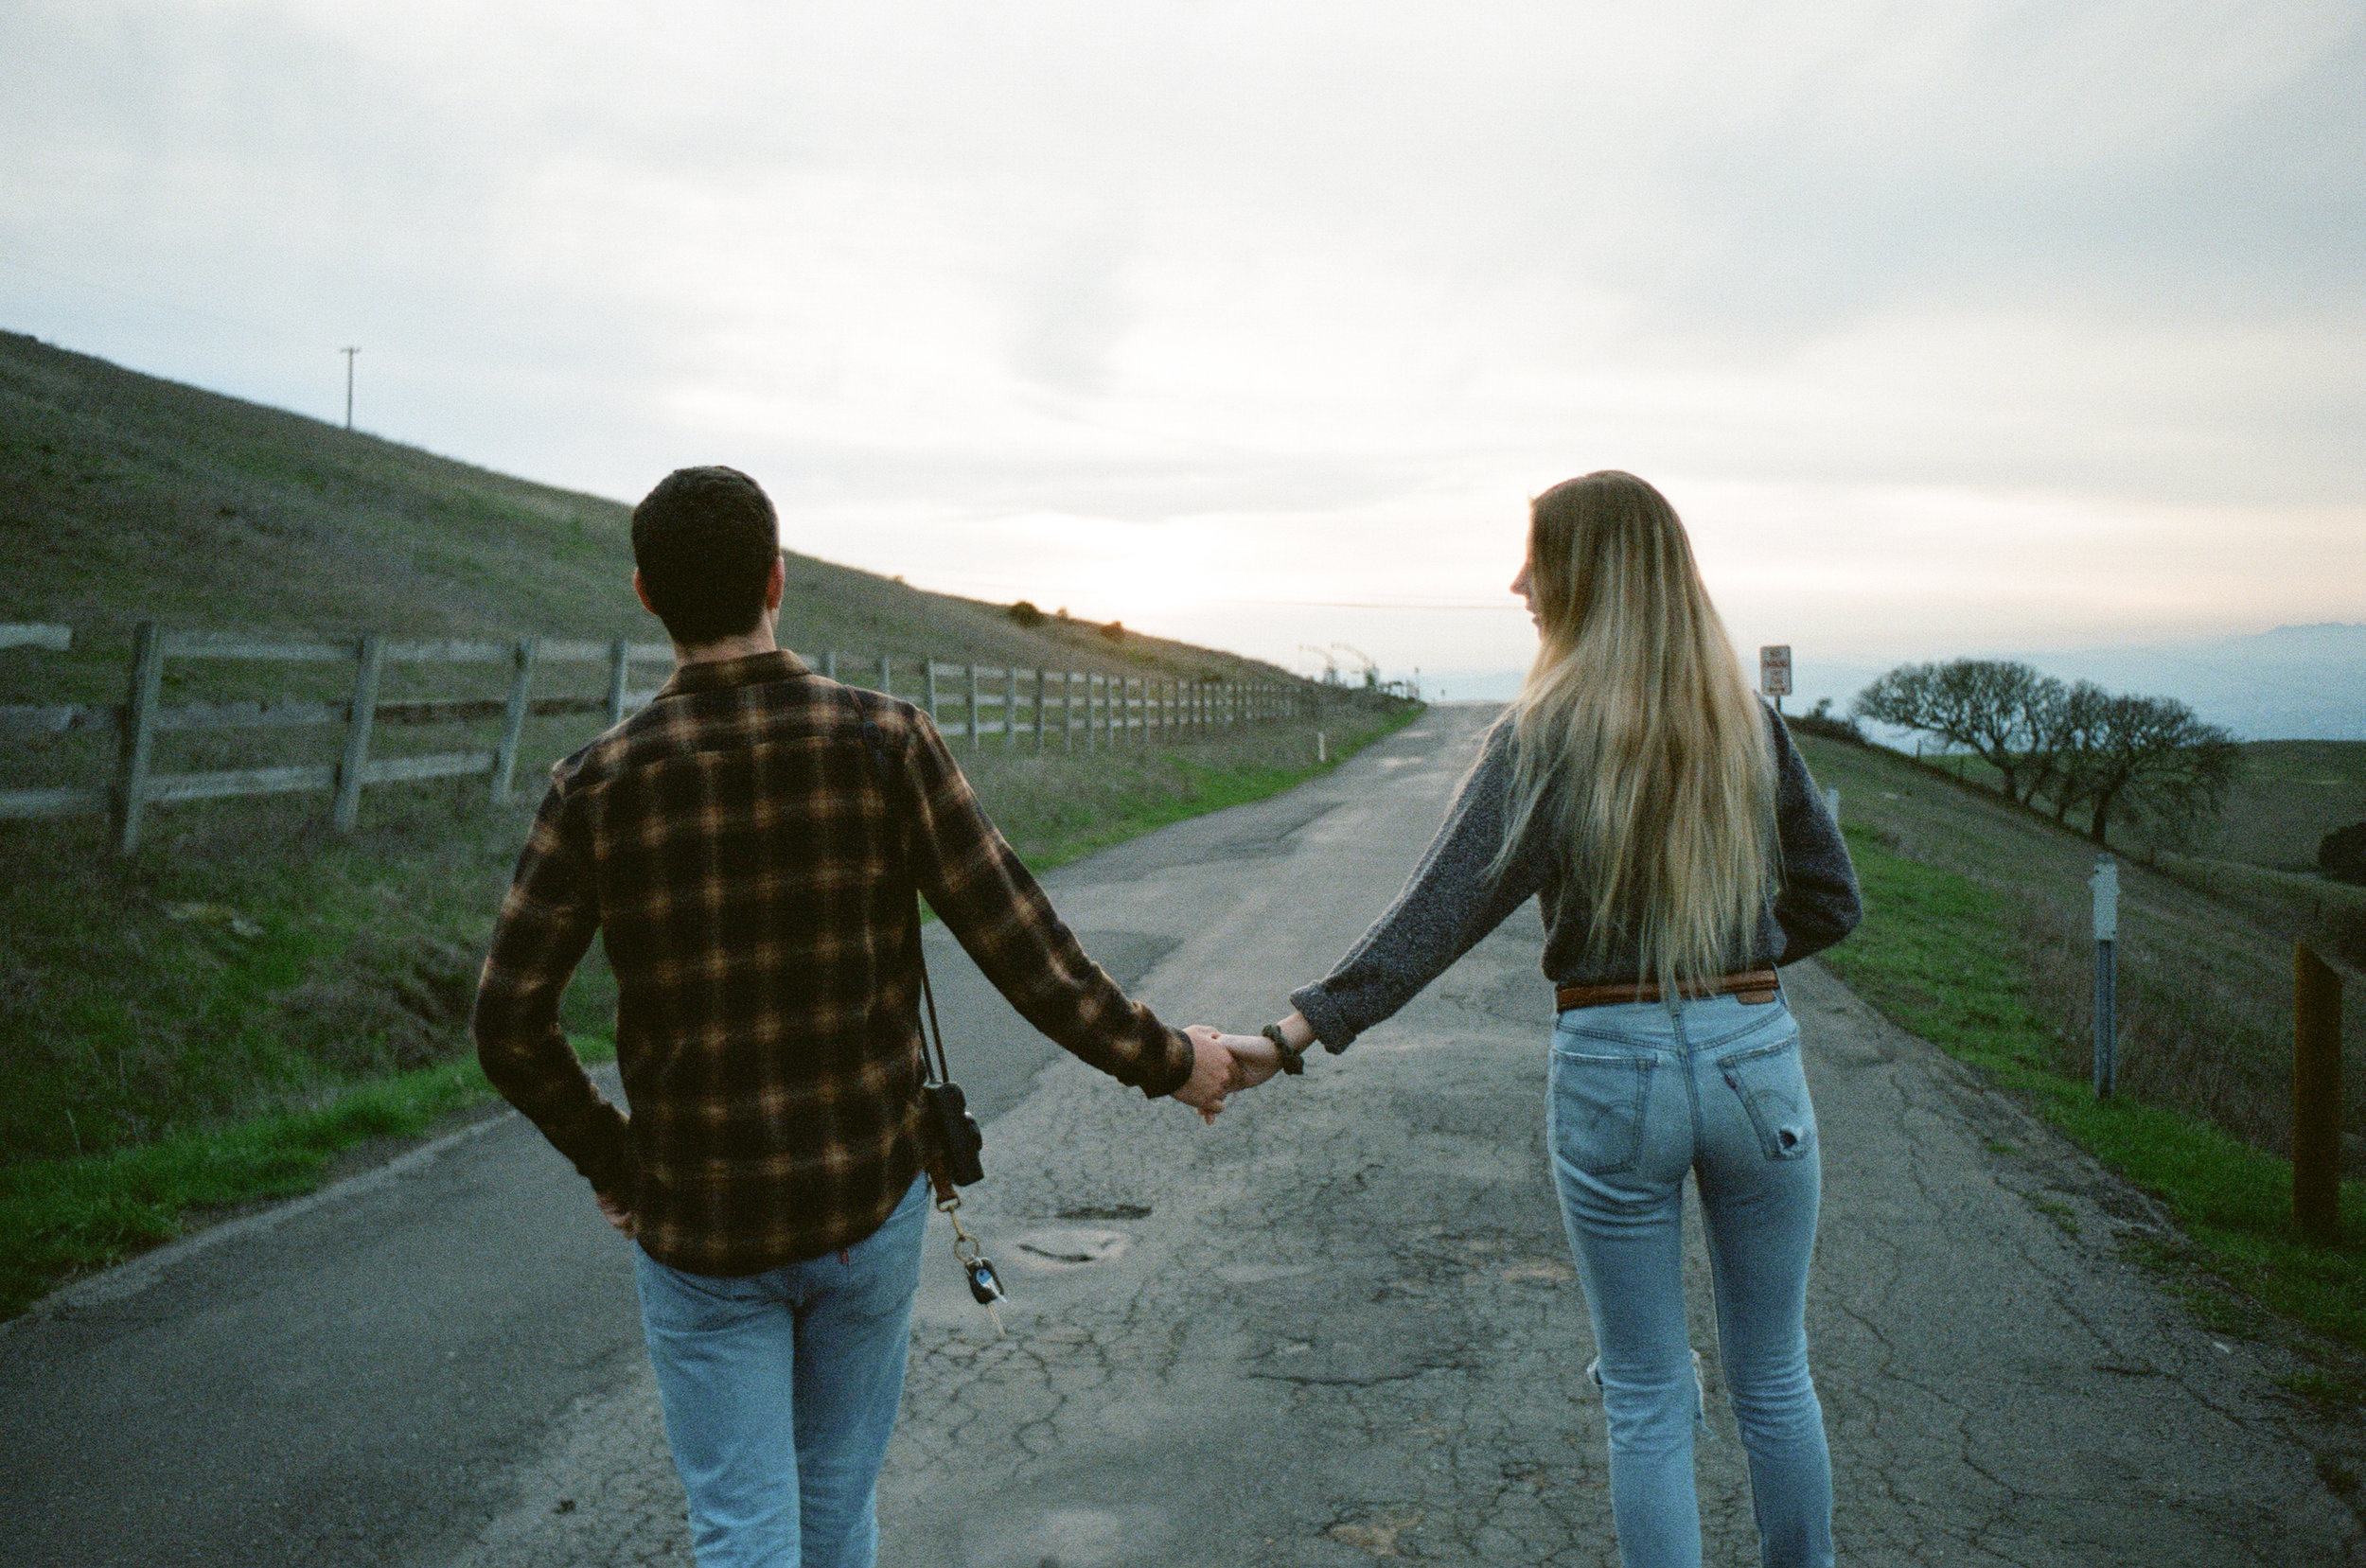 hannah&cole-california-film-jan2019-peytoncurry-000098780030.jpg